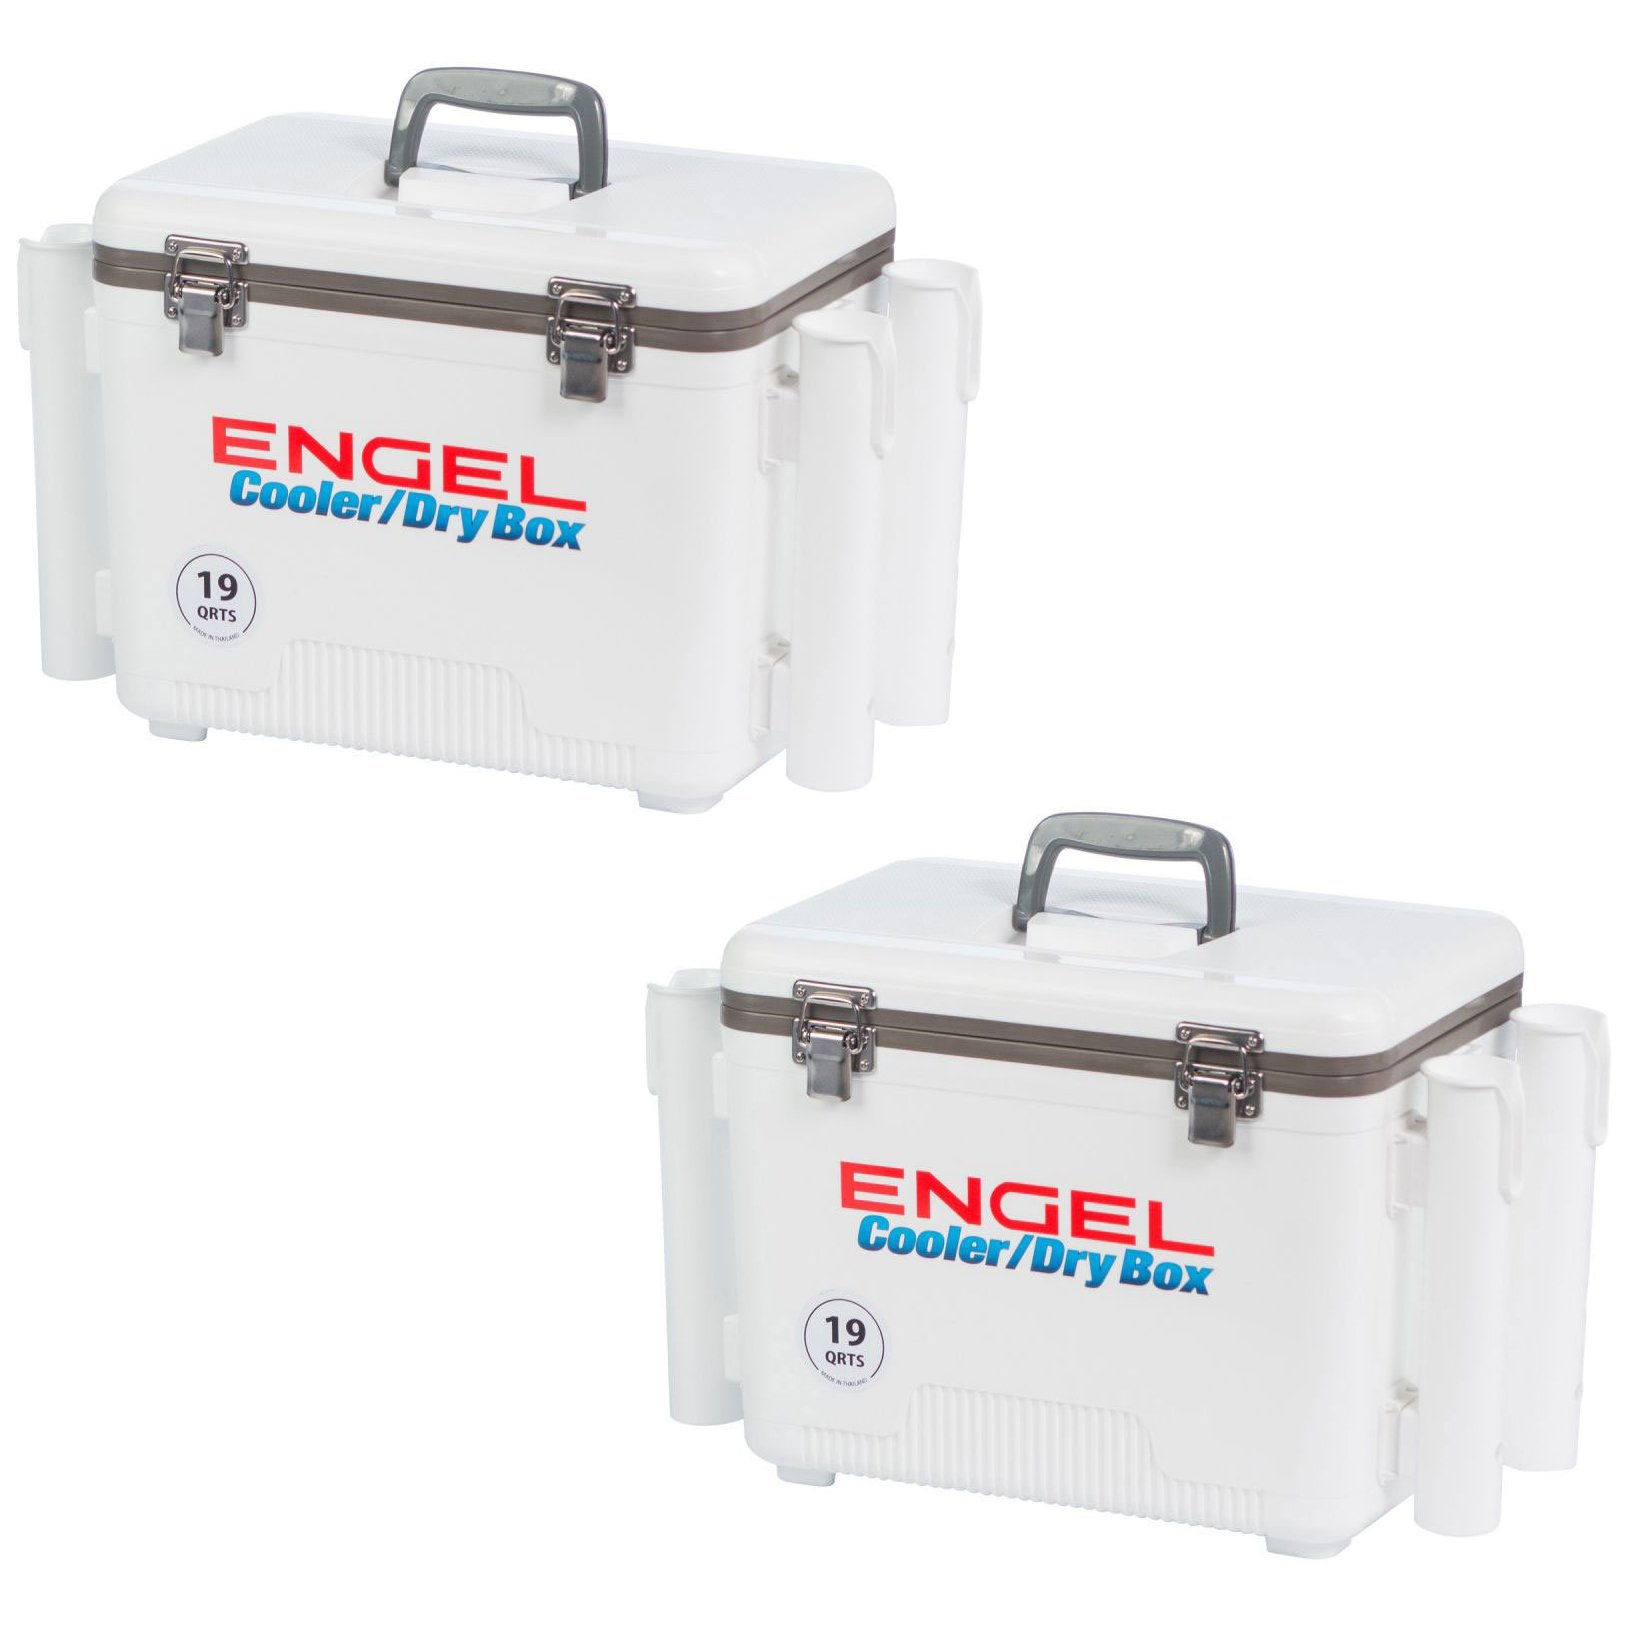 Engel 19 Qt. Fishing Rod Holder Attachment Insulated Dry Box Ice Cooler (2 Pack)